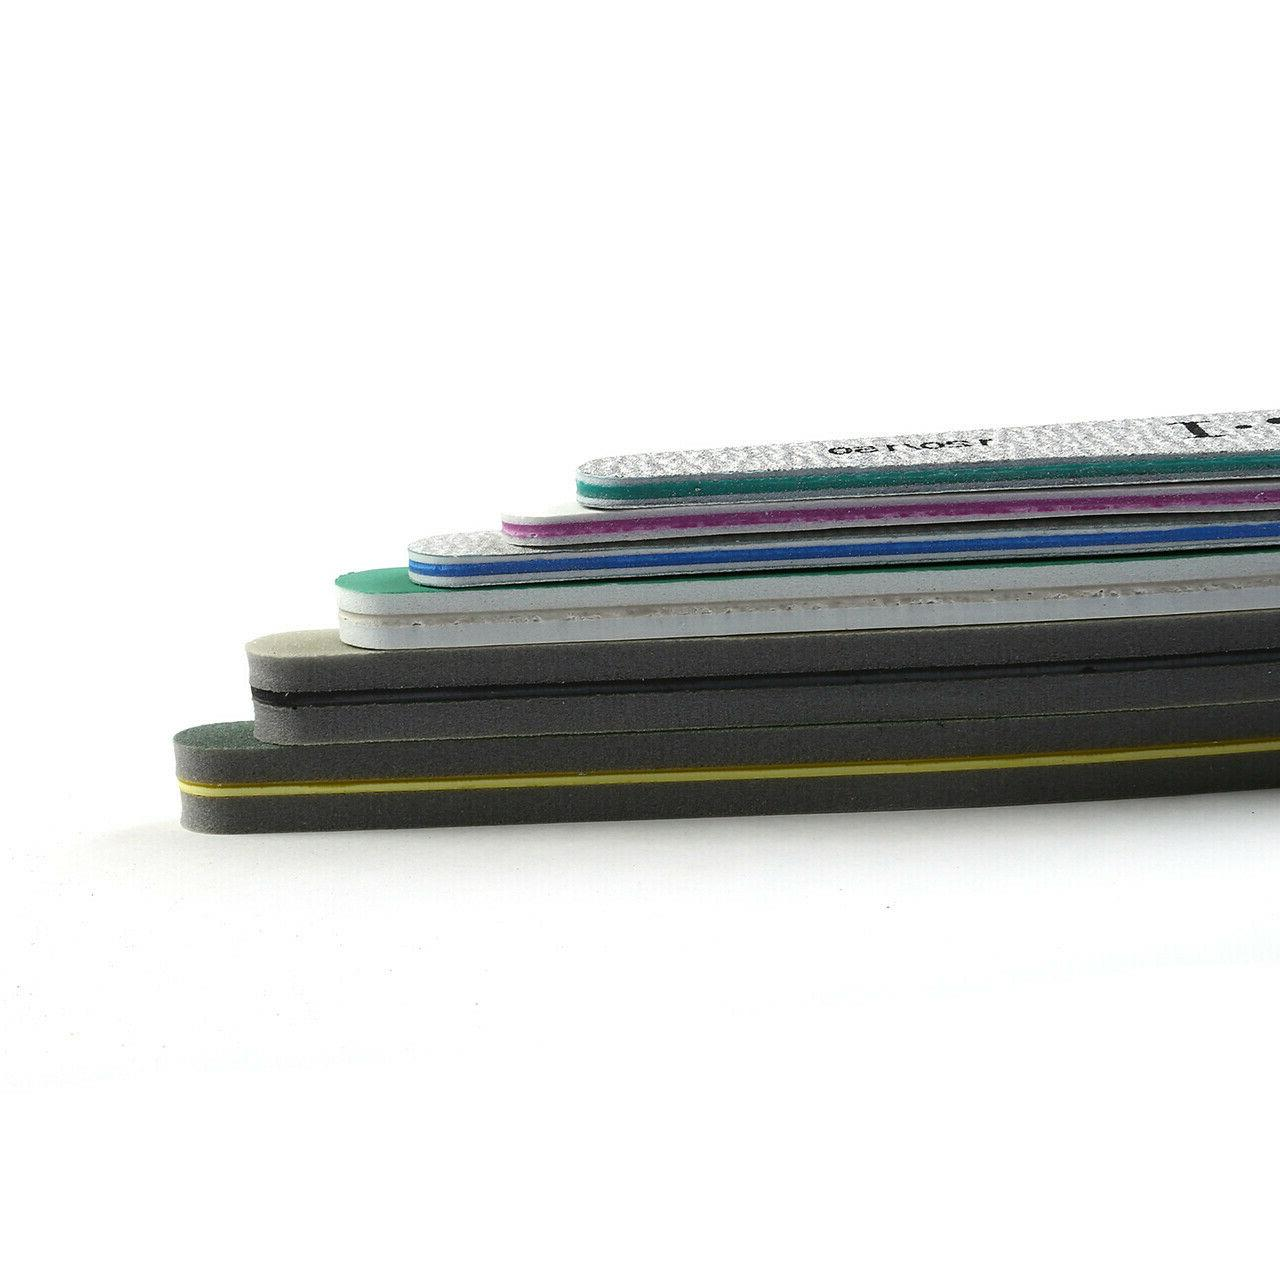 6 Packs Double Sided Emery Boards Files US